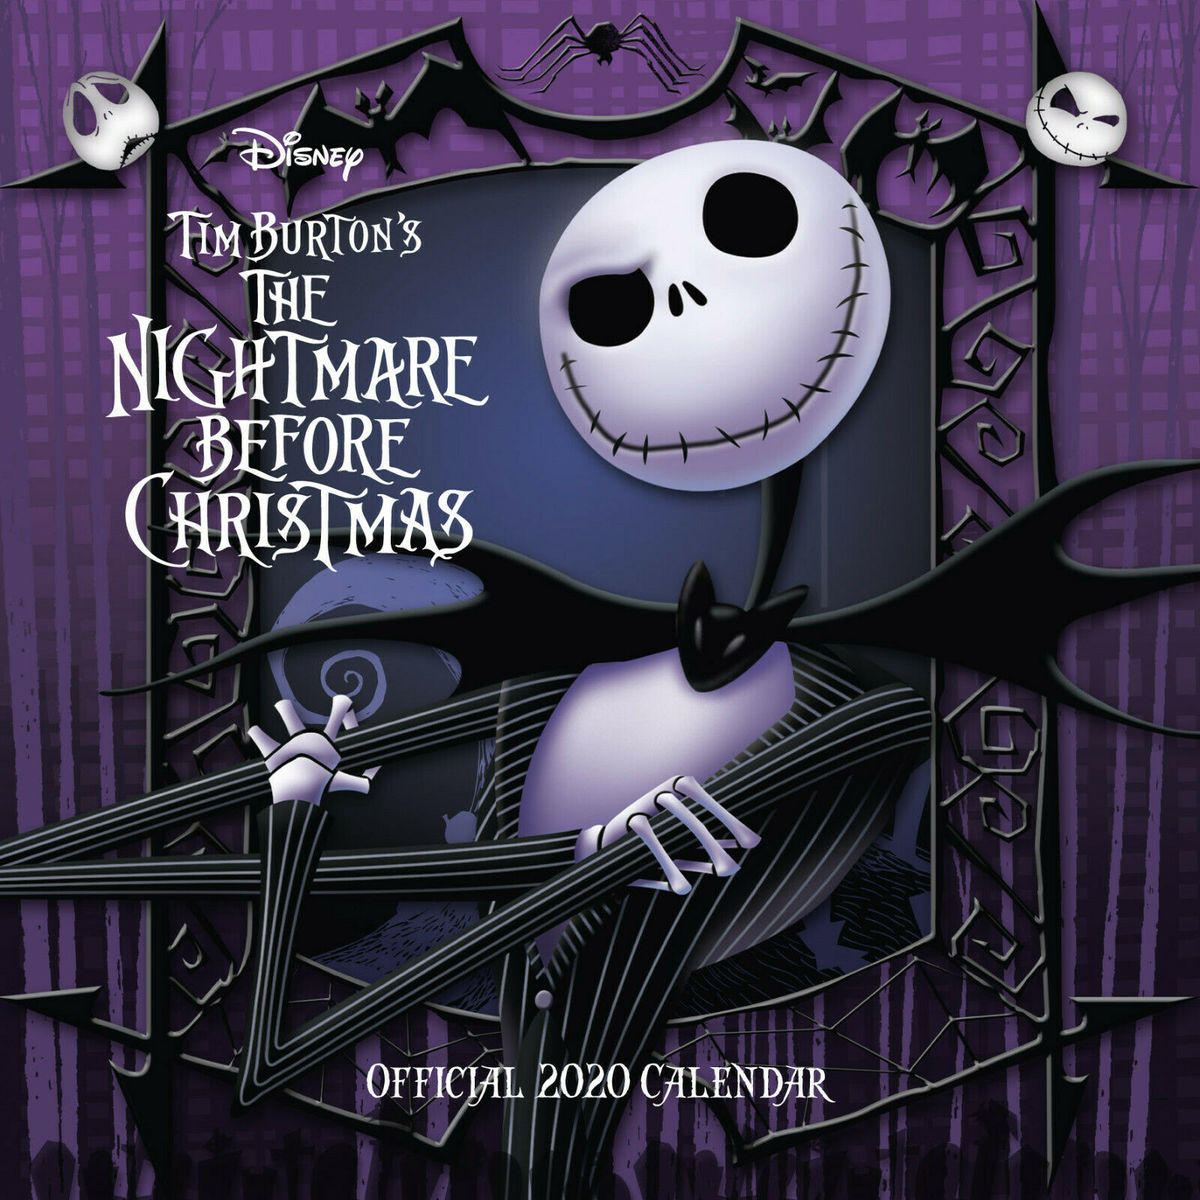 kalendář na rok 2020 - Nightmare Before Christmas - 233-2019